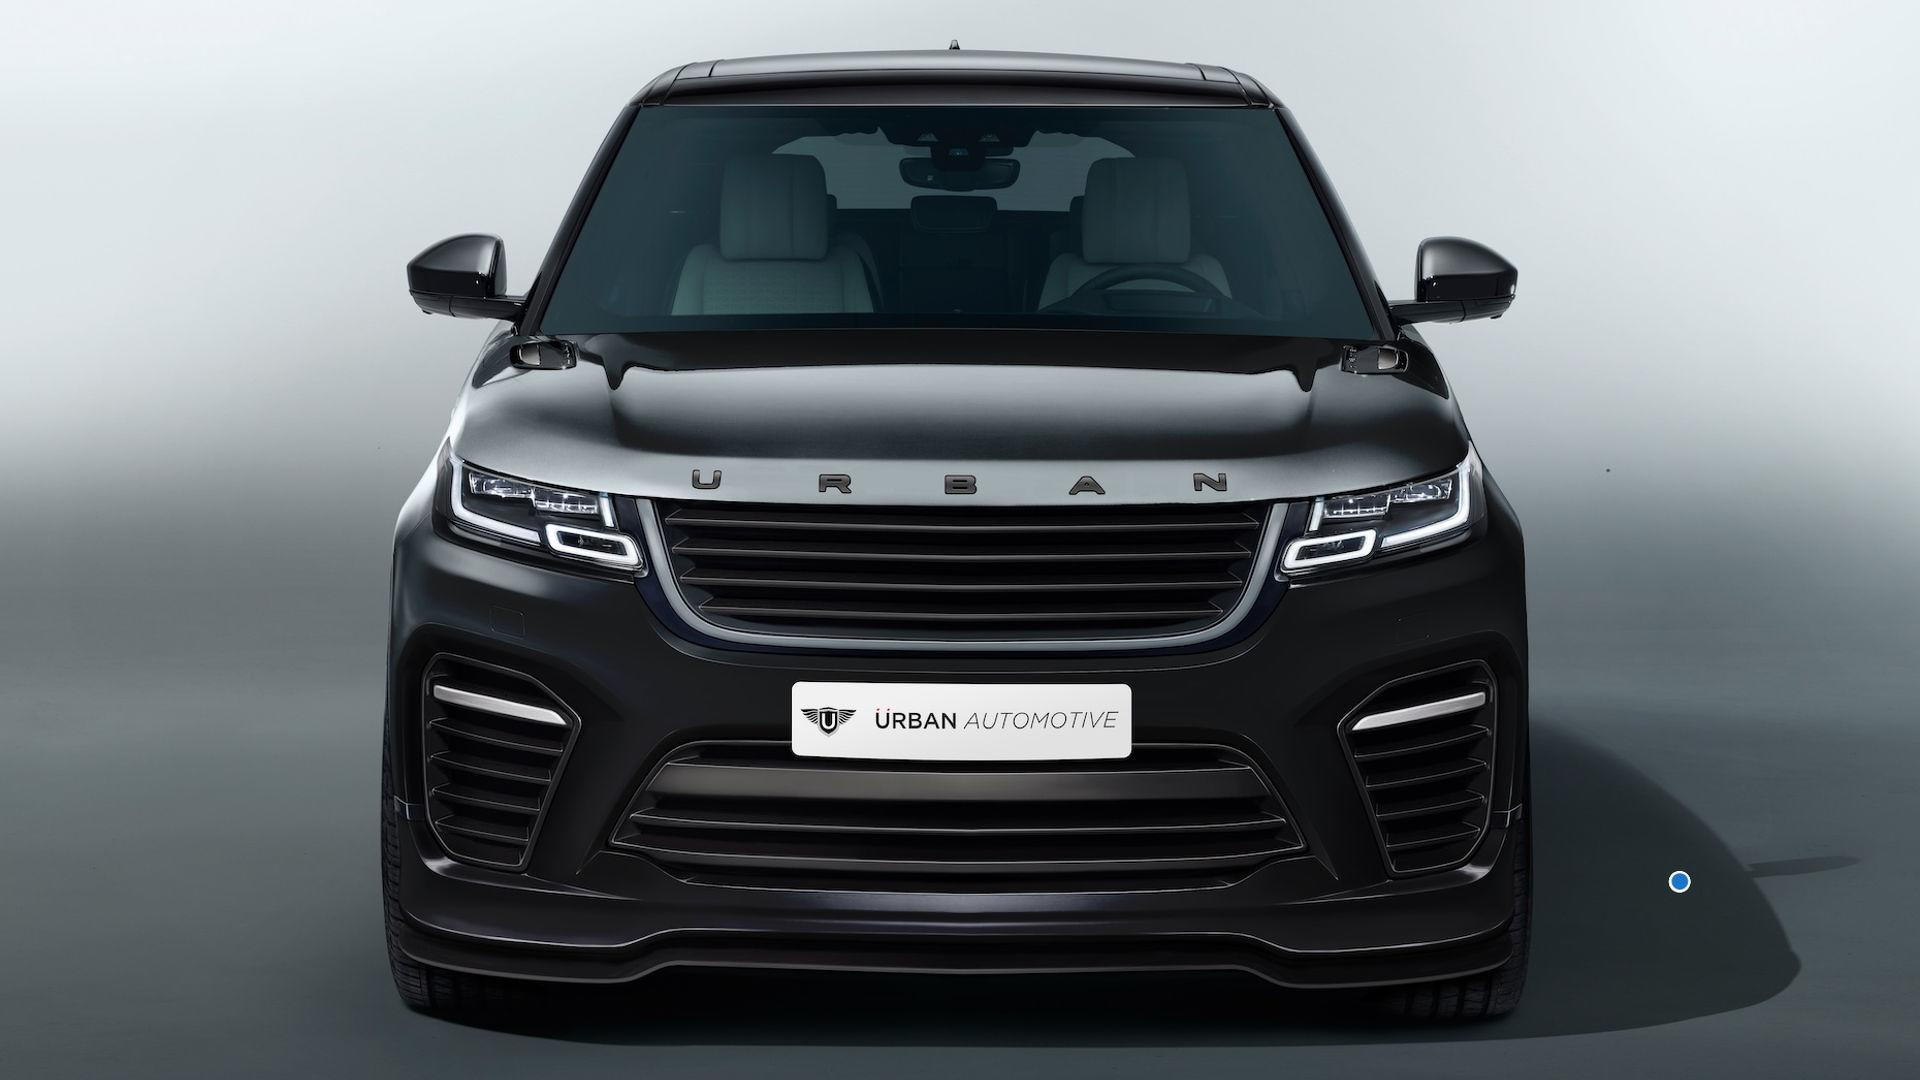 hight resolution of we started work this week having received our first velar and the upgrade specification will receive the following modifications